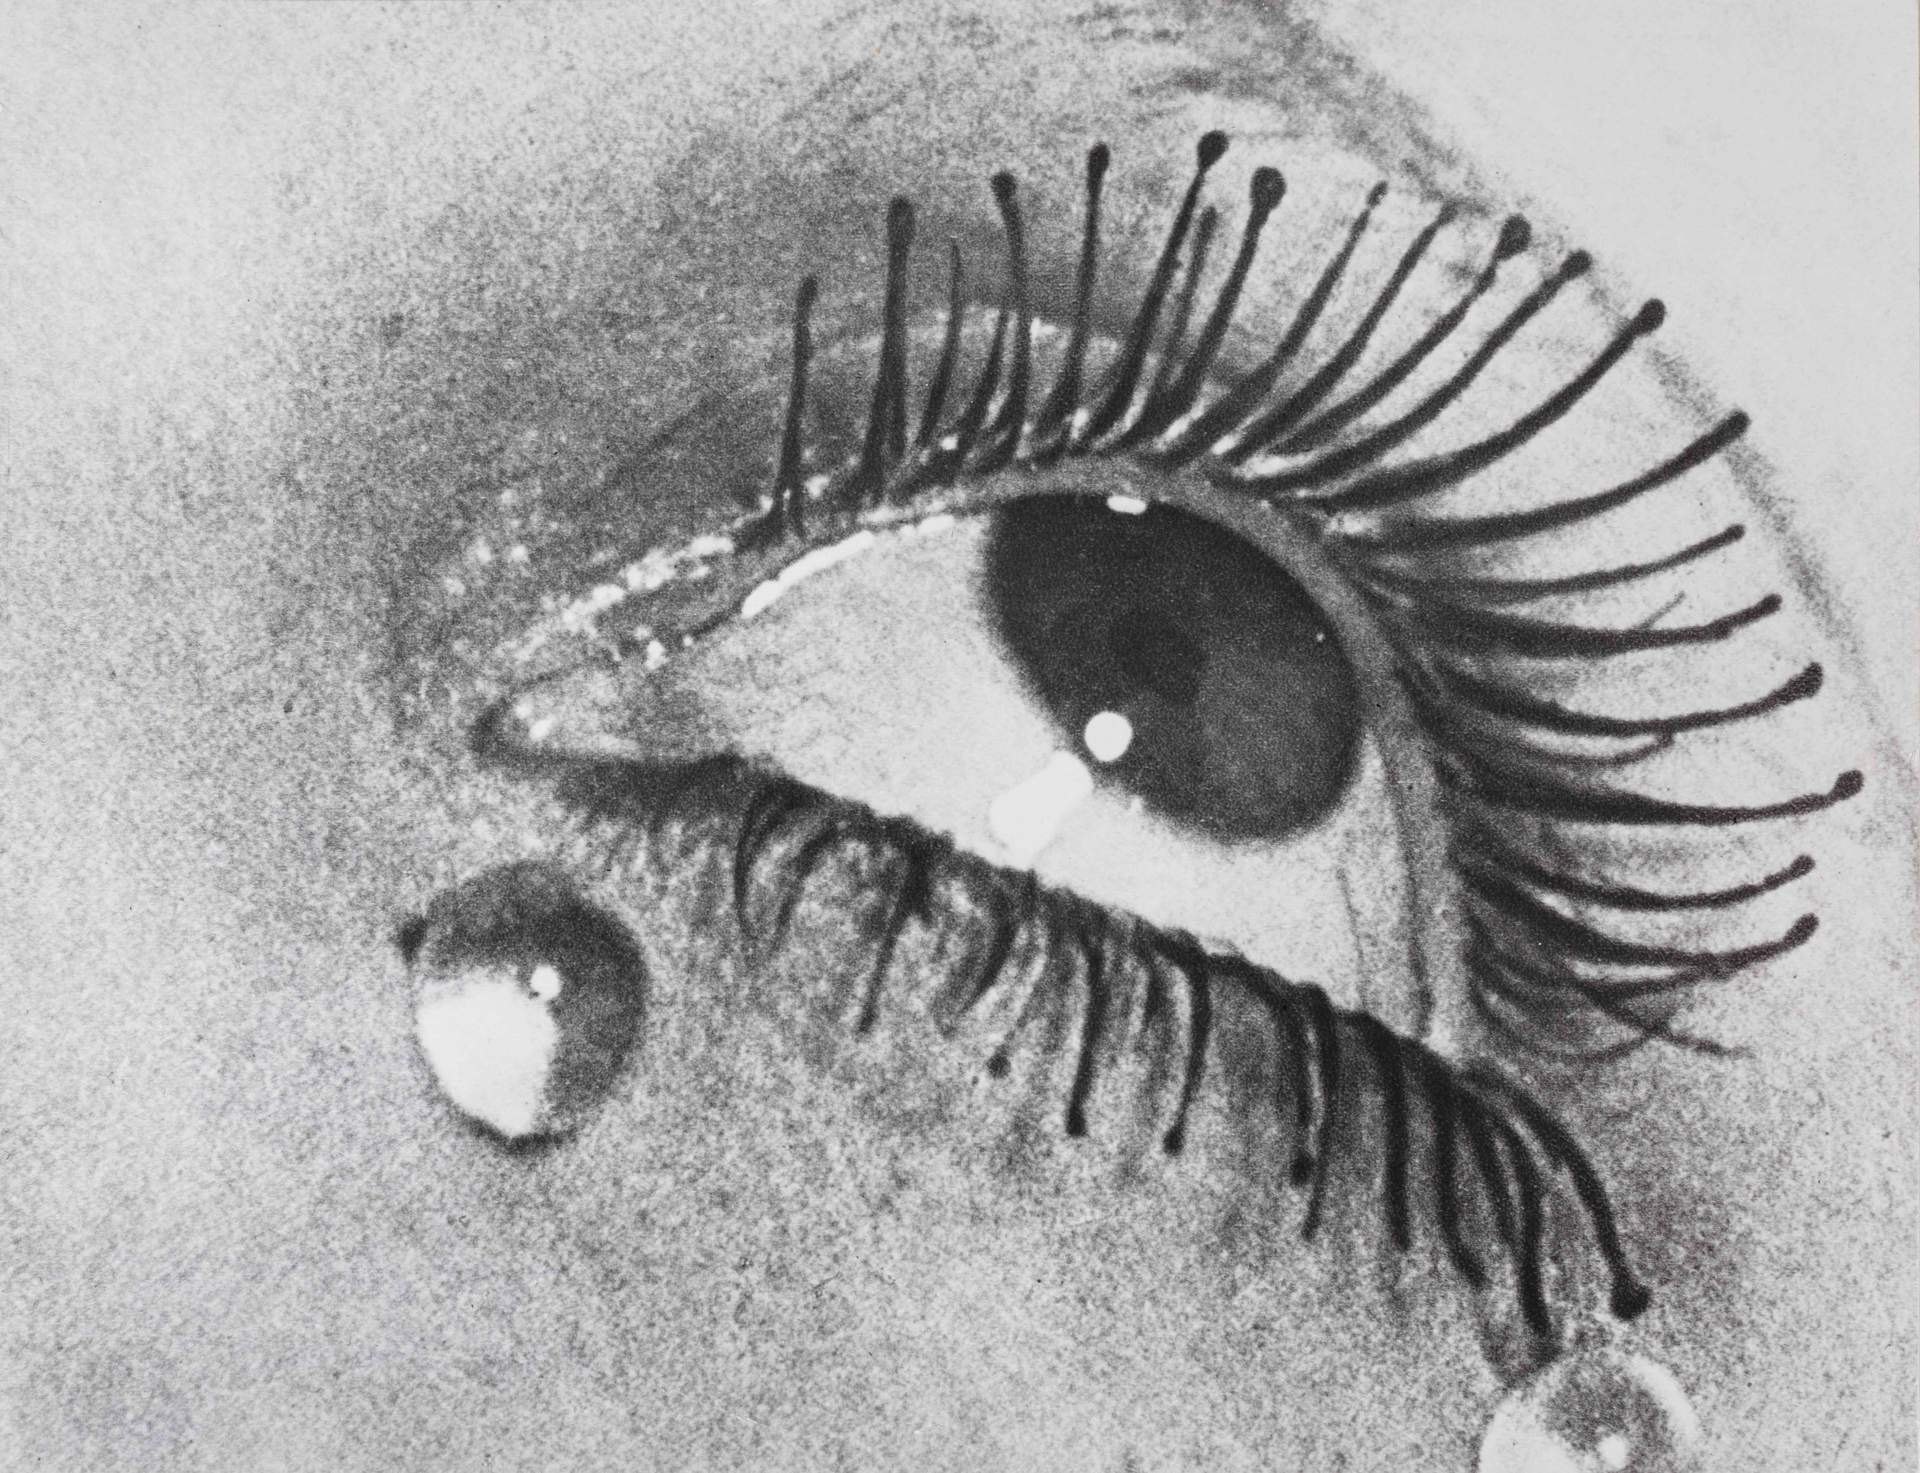 MAN RAY, Glass Tears, 1976, Photo by Renato Ghiazza